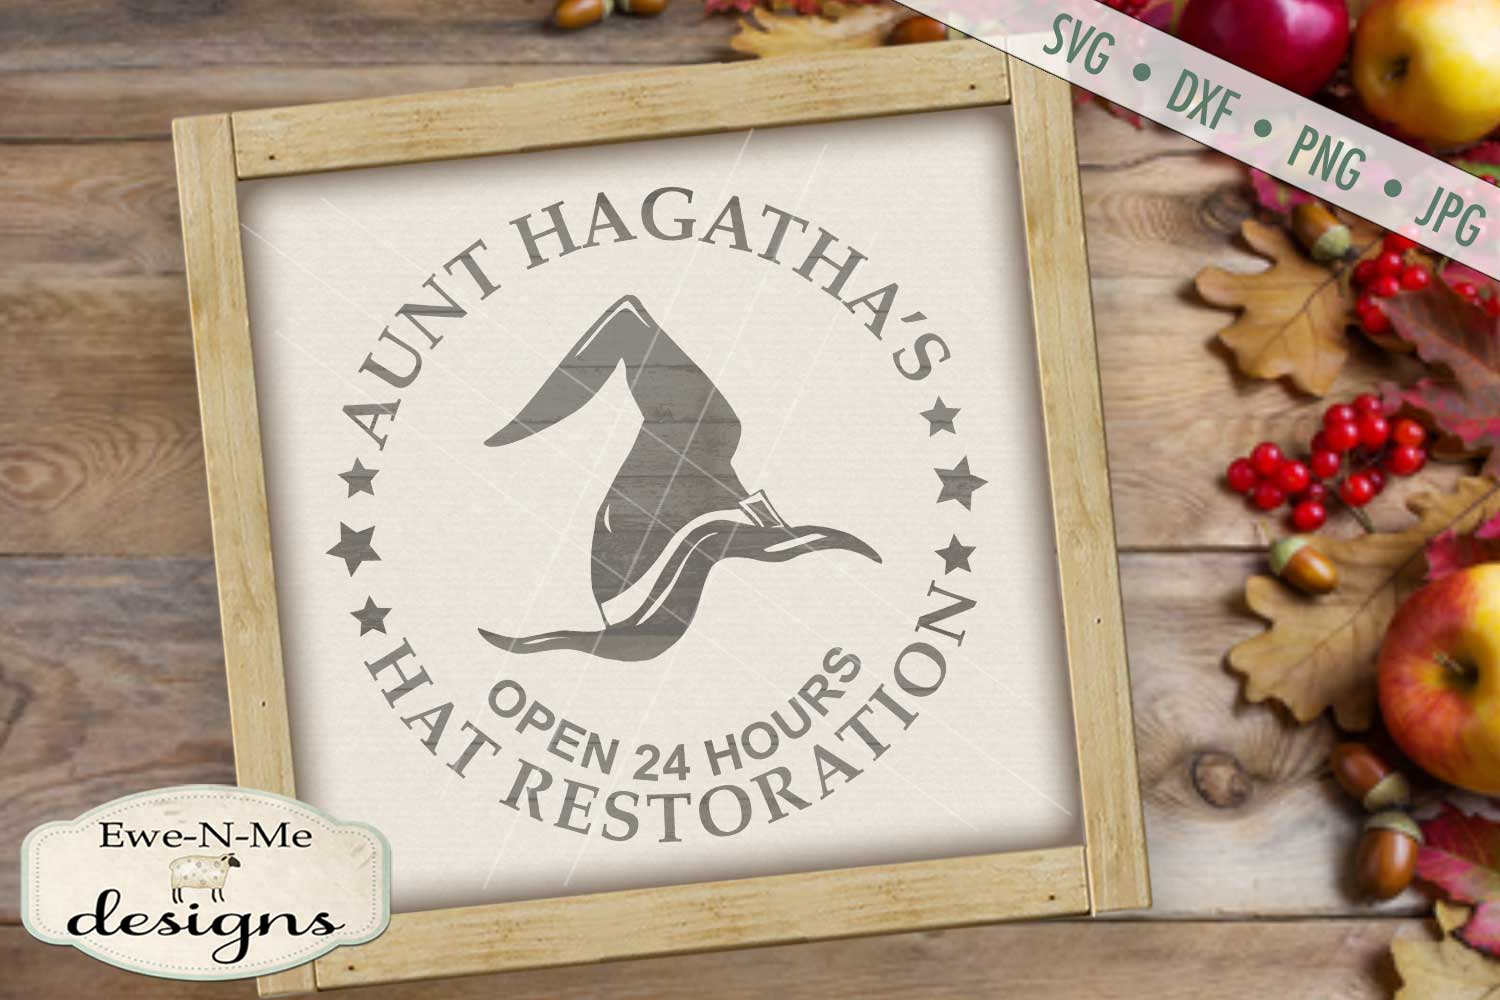 Witch Hat Restoration Aunt Hagatha Halloween SVG DXF Files example image 1